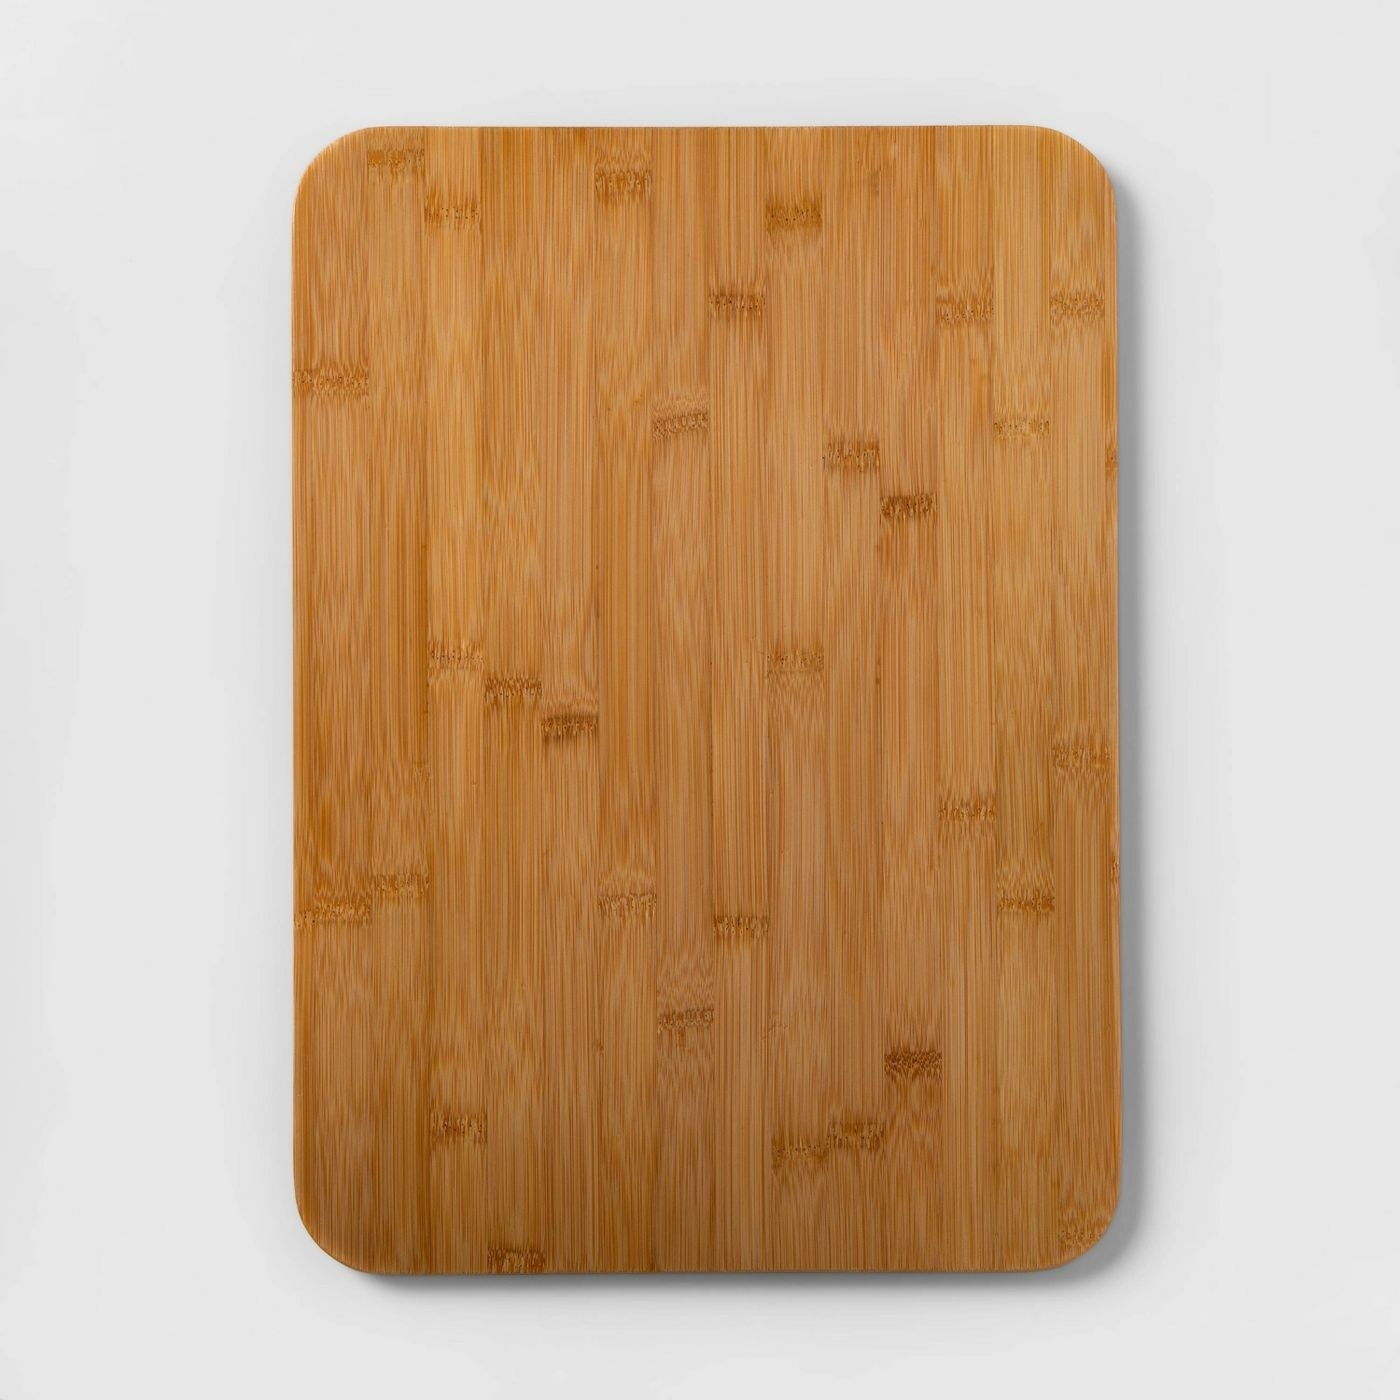 The wooden cutting board